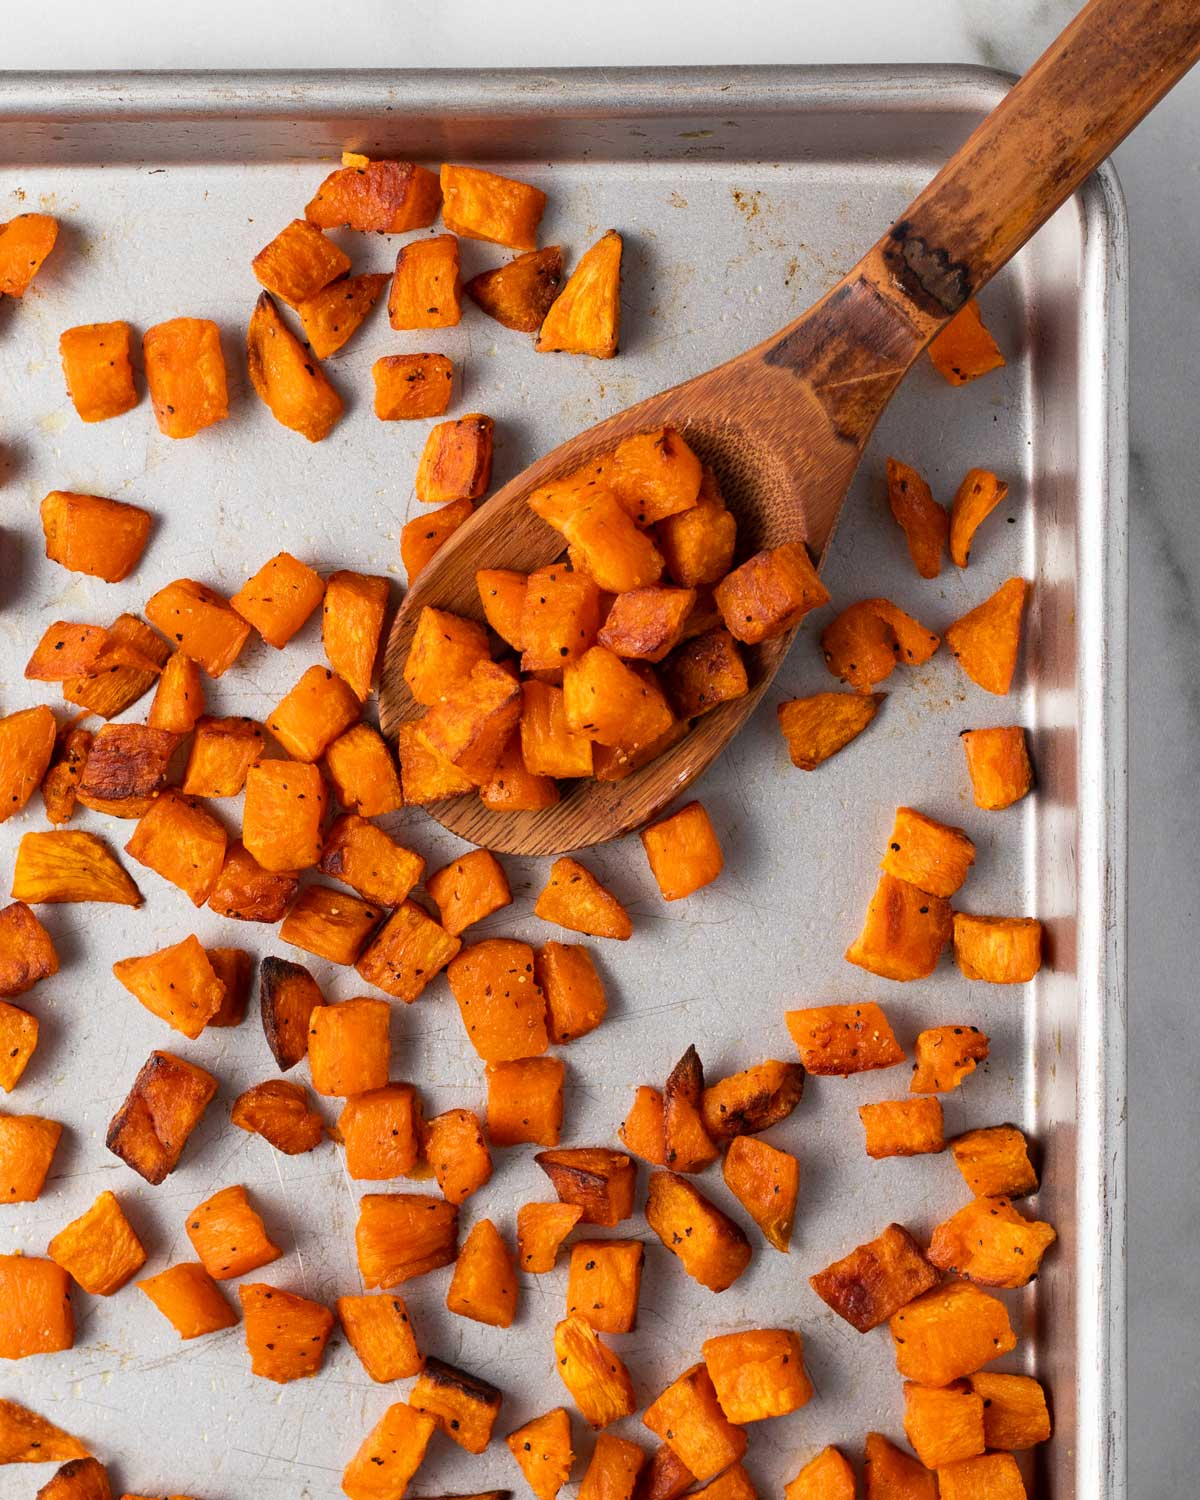 Roasted sweet potatoes with crispy edges on a sheet pan with a wooden spoon scooping some up.